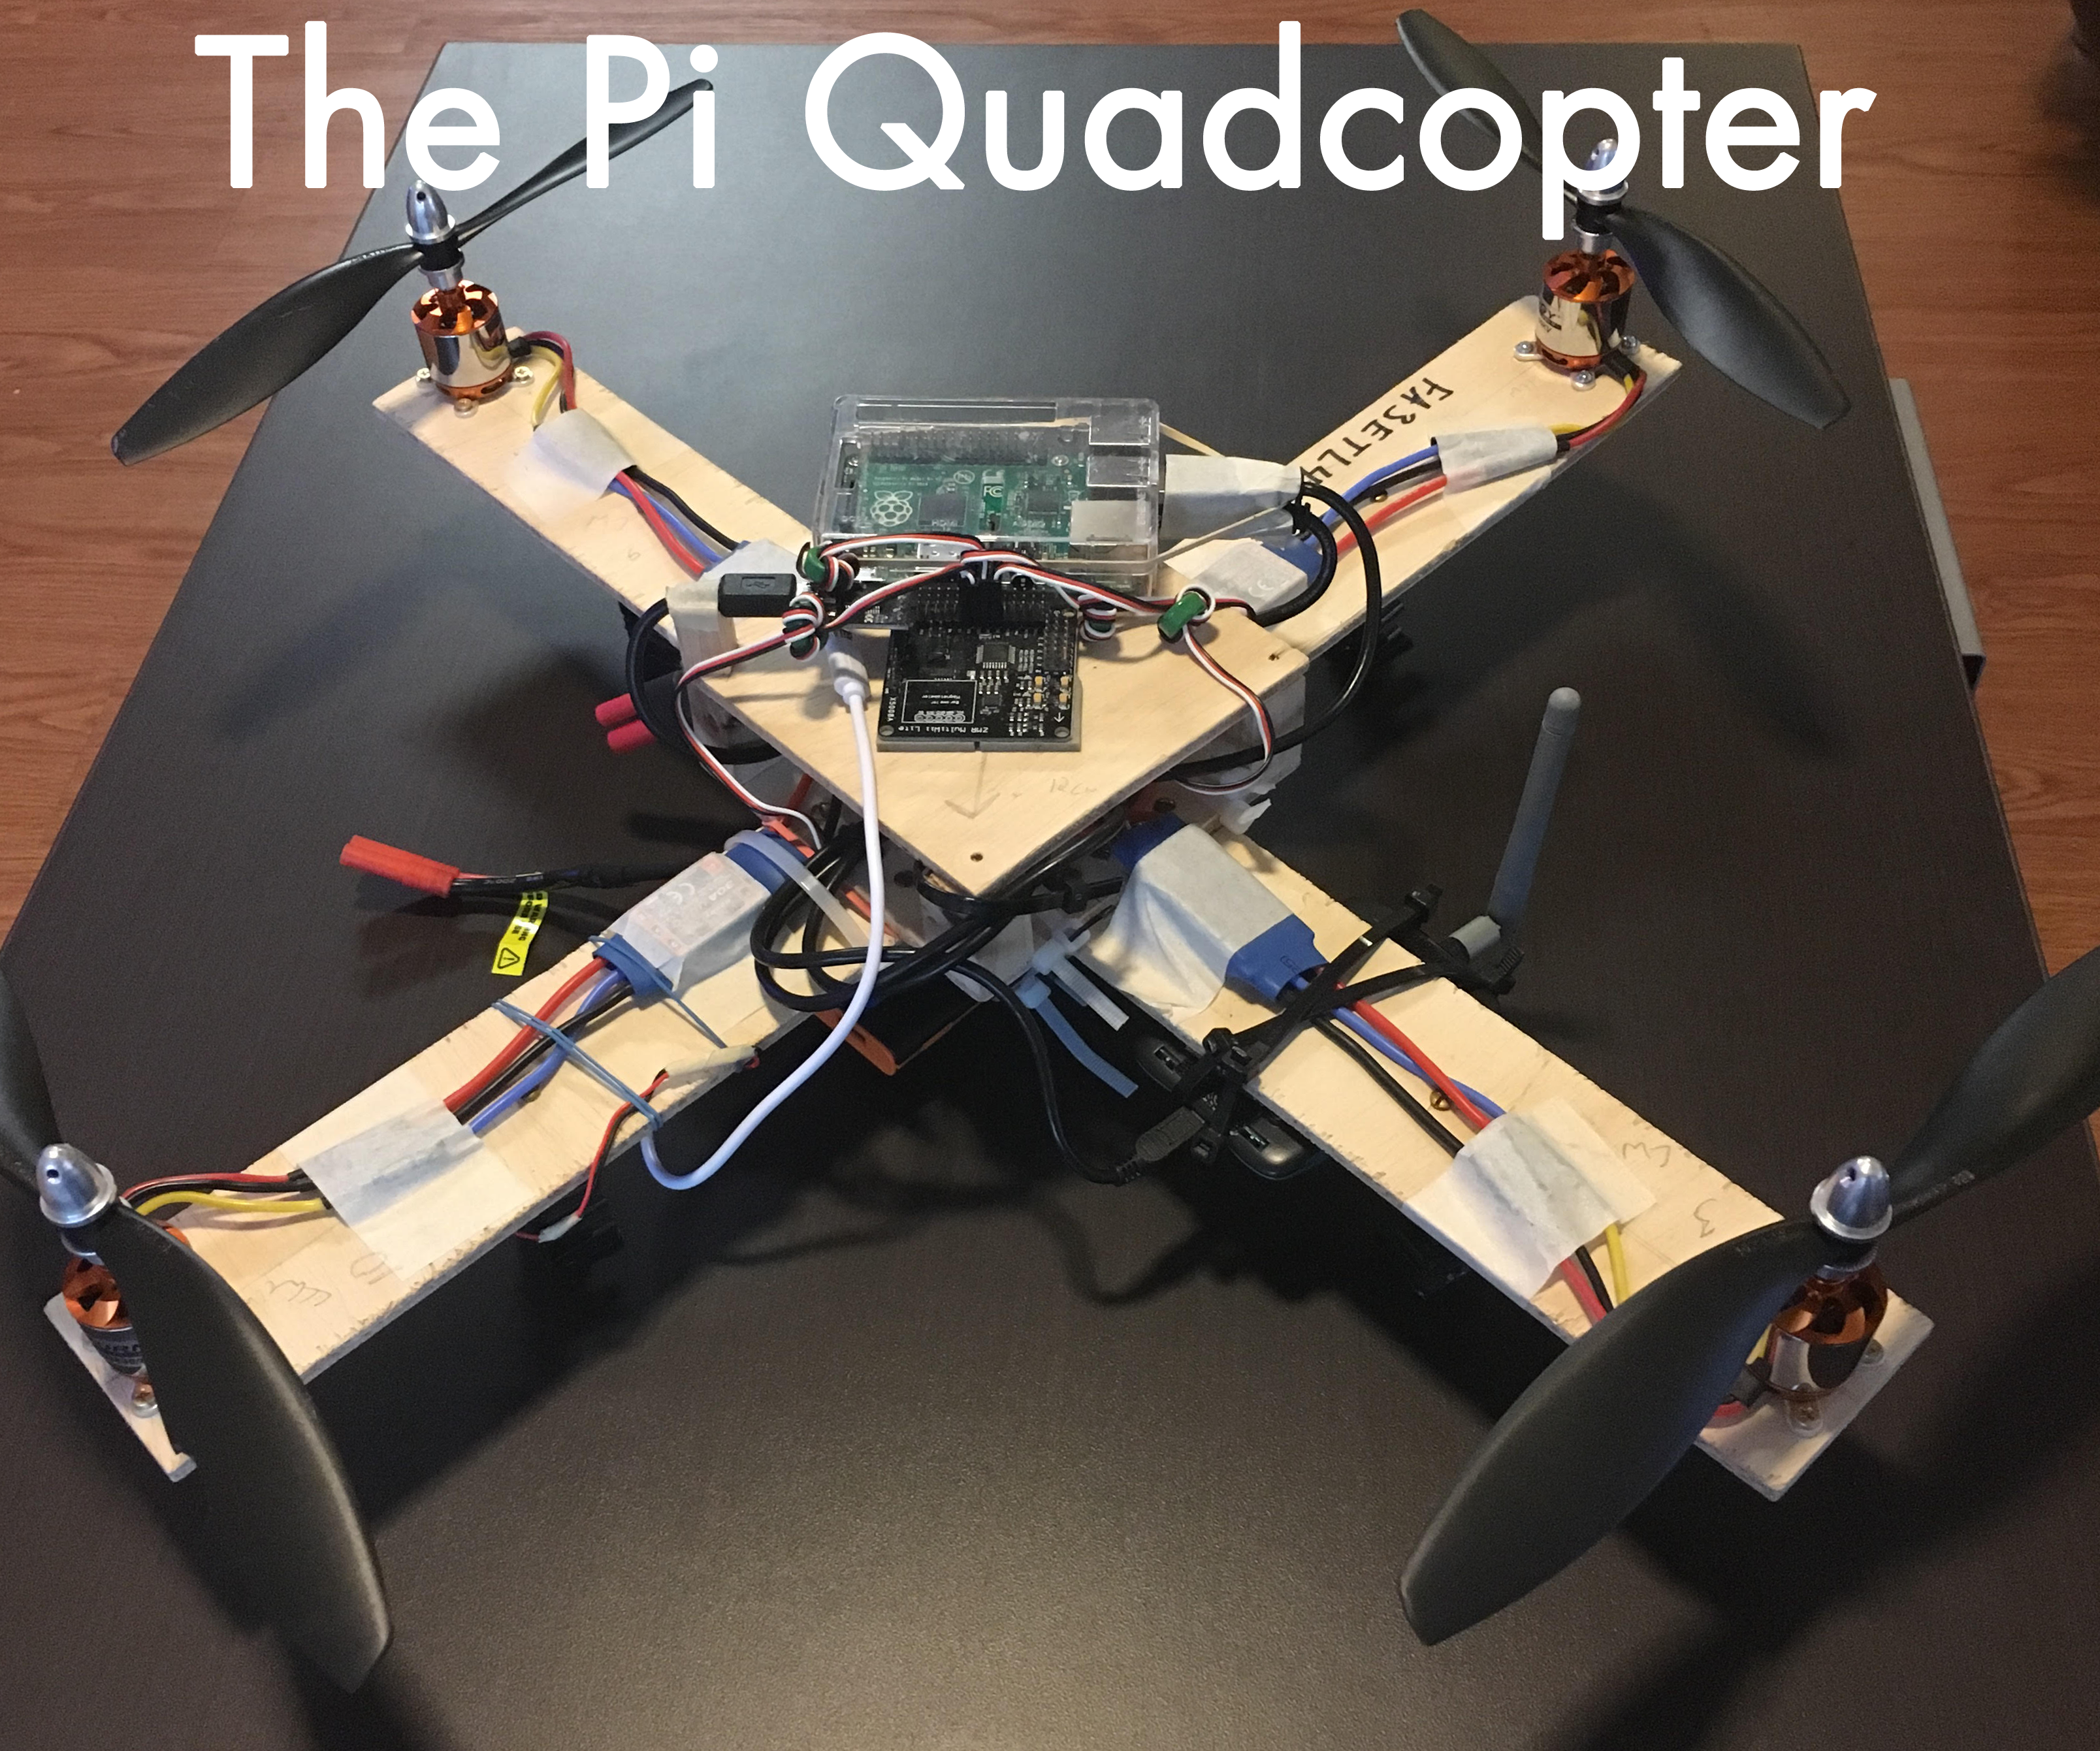 The Pi Quadcopter